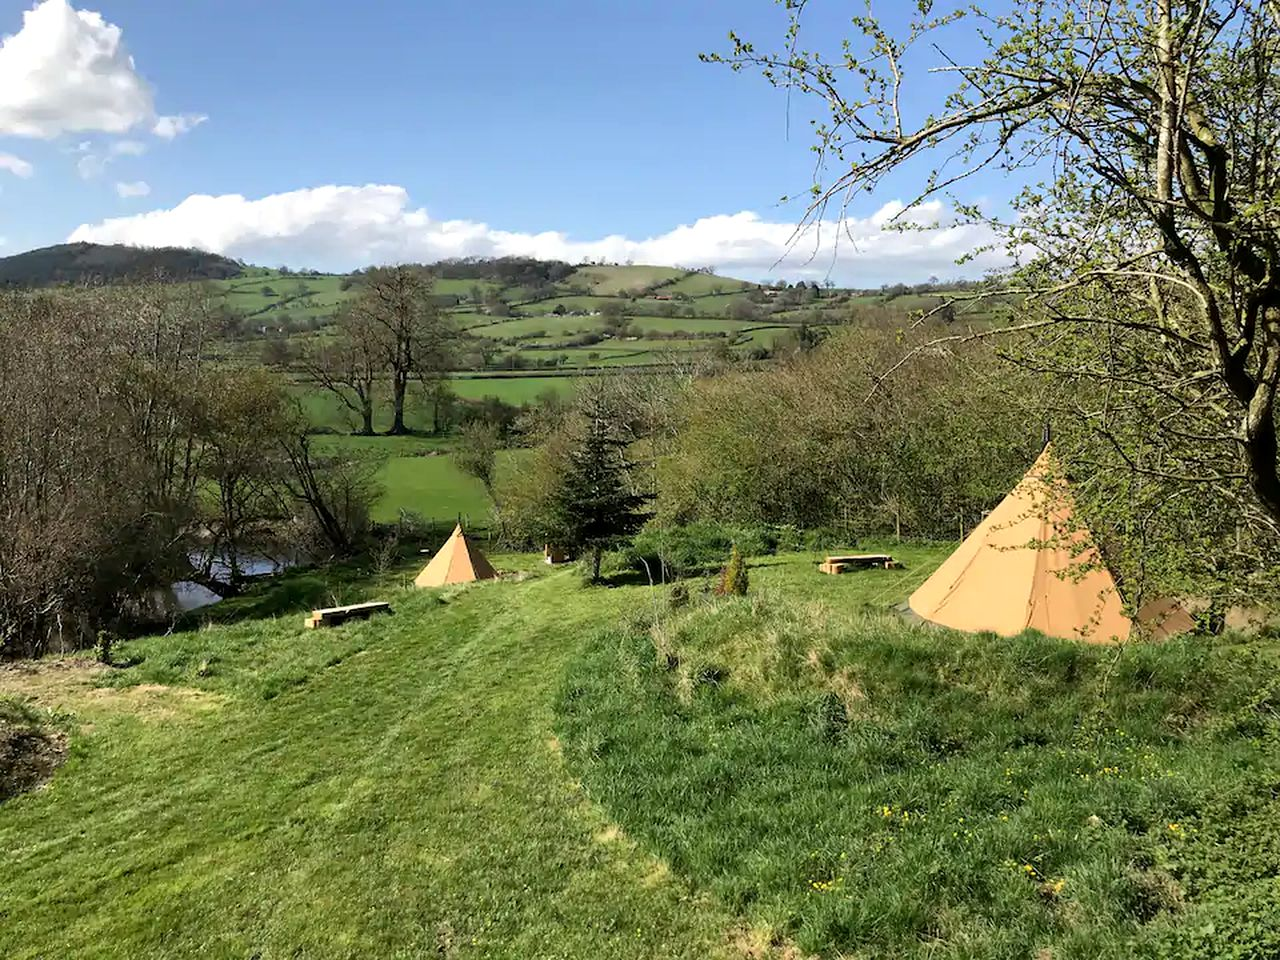 Tipi rental for glamping in Wales